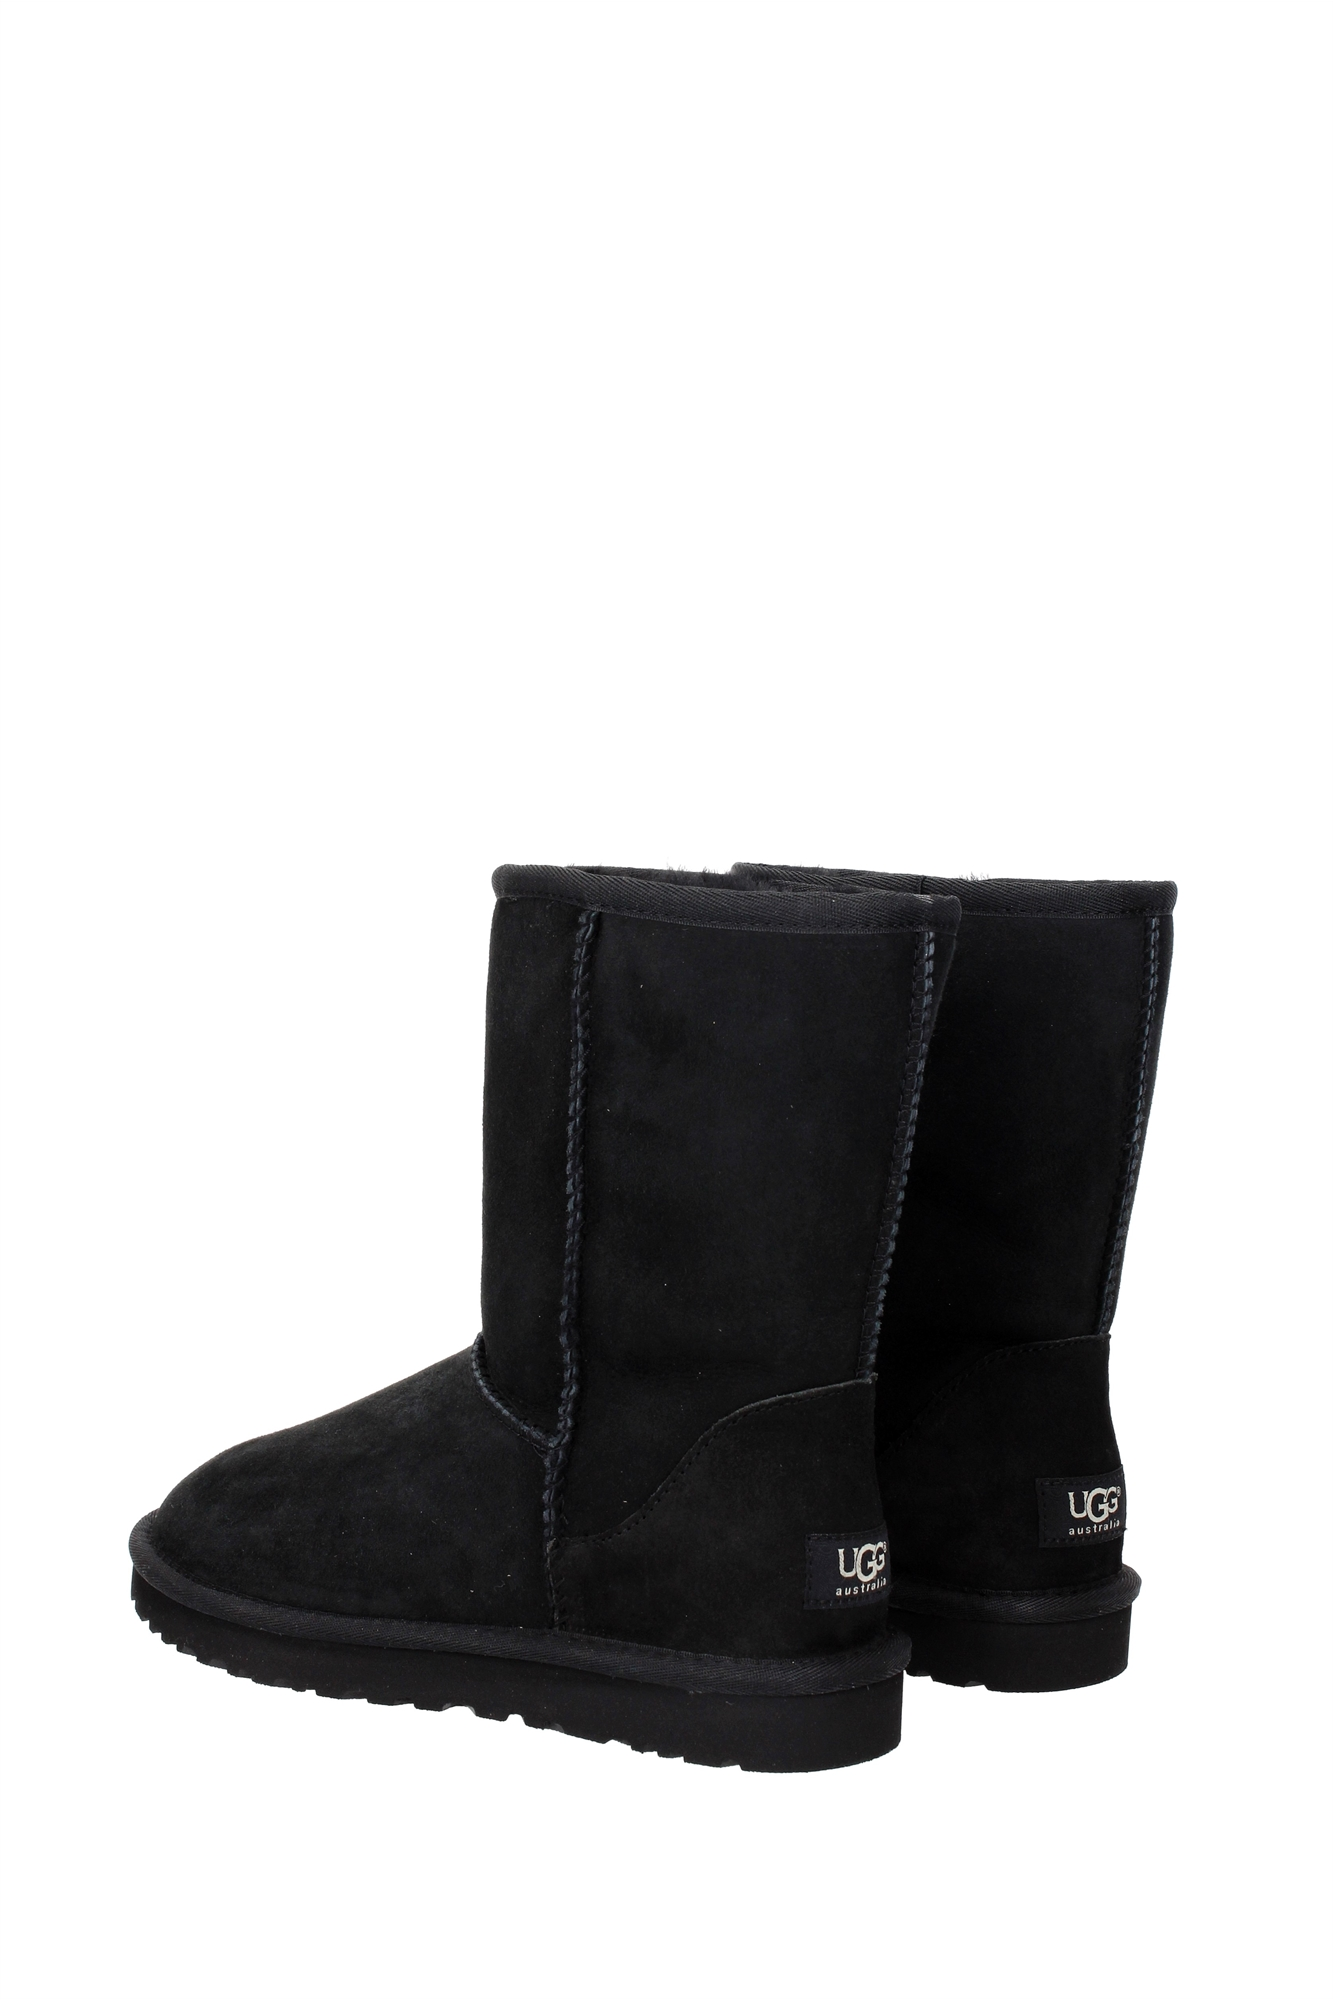 stiefeletten ugg damen wildleder schwarz wclassicshort5825blk ebay. Black Bedroom Furniture Sets. Home Design Ideas